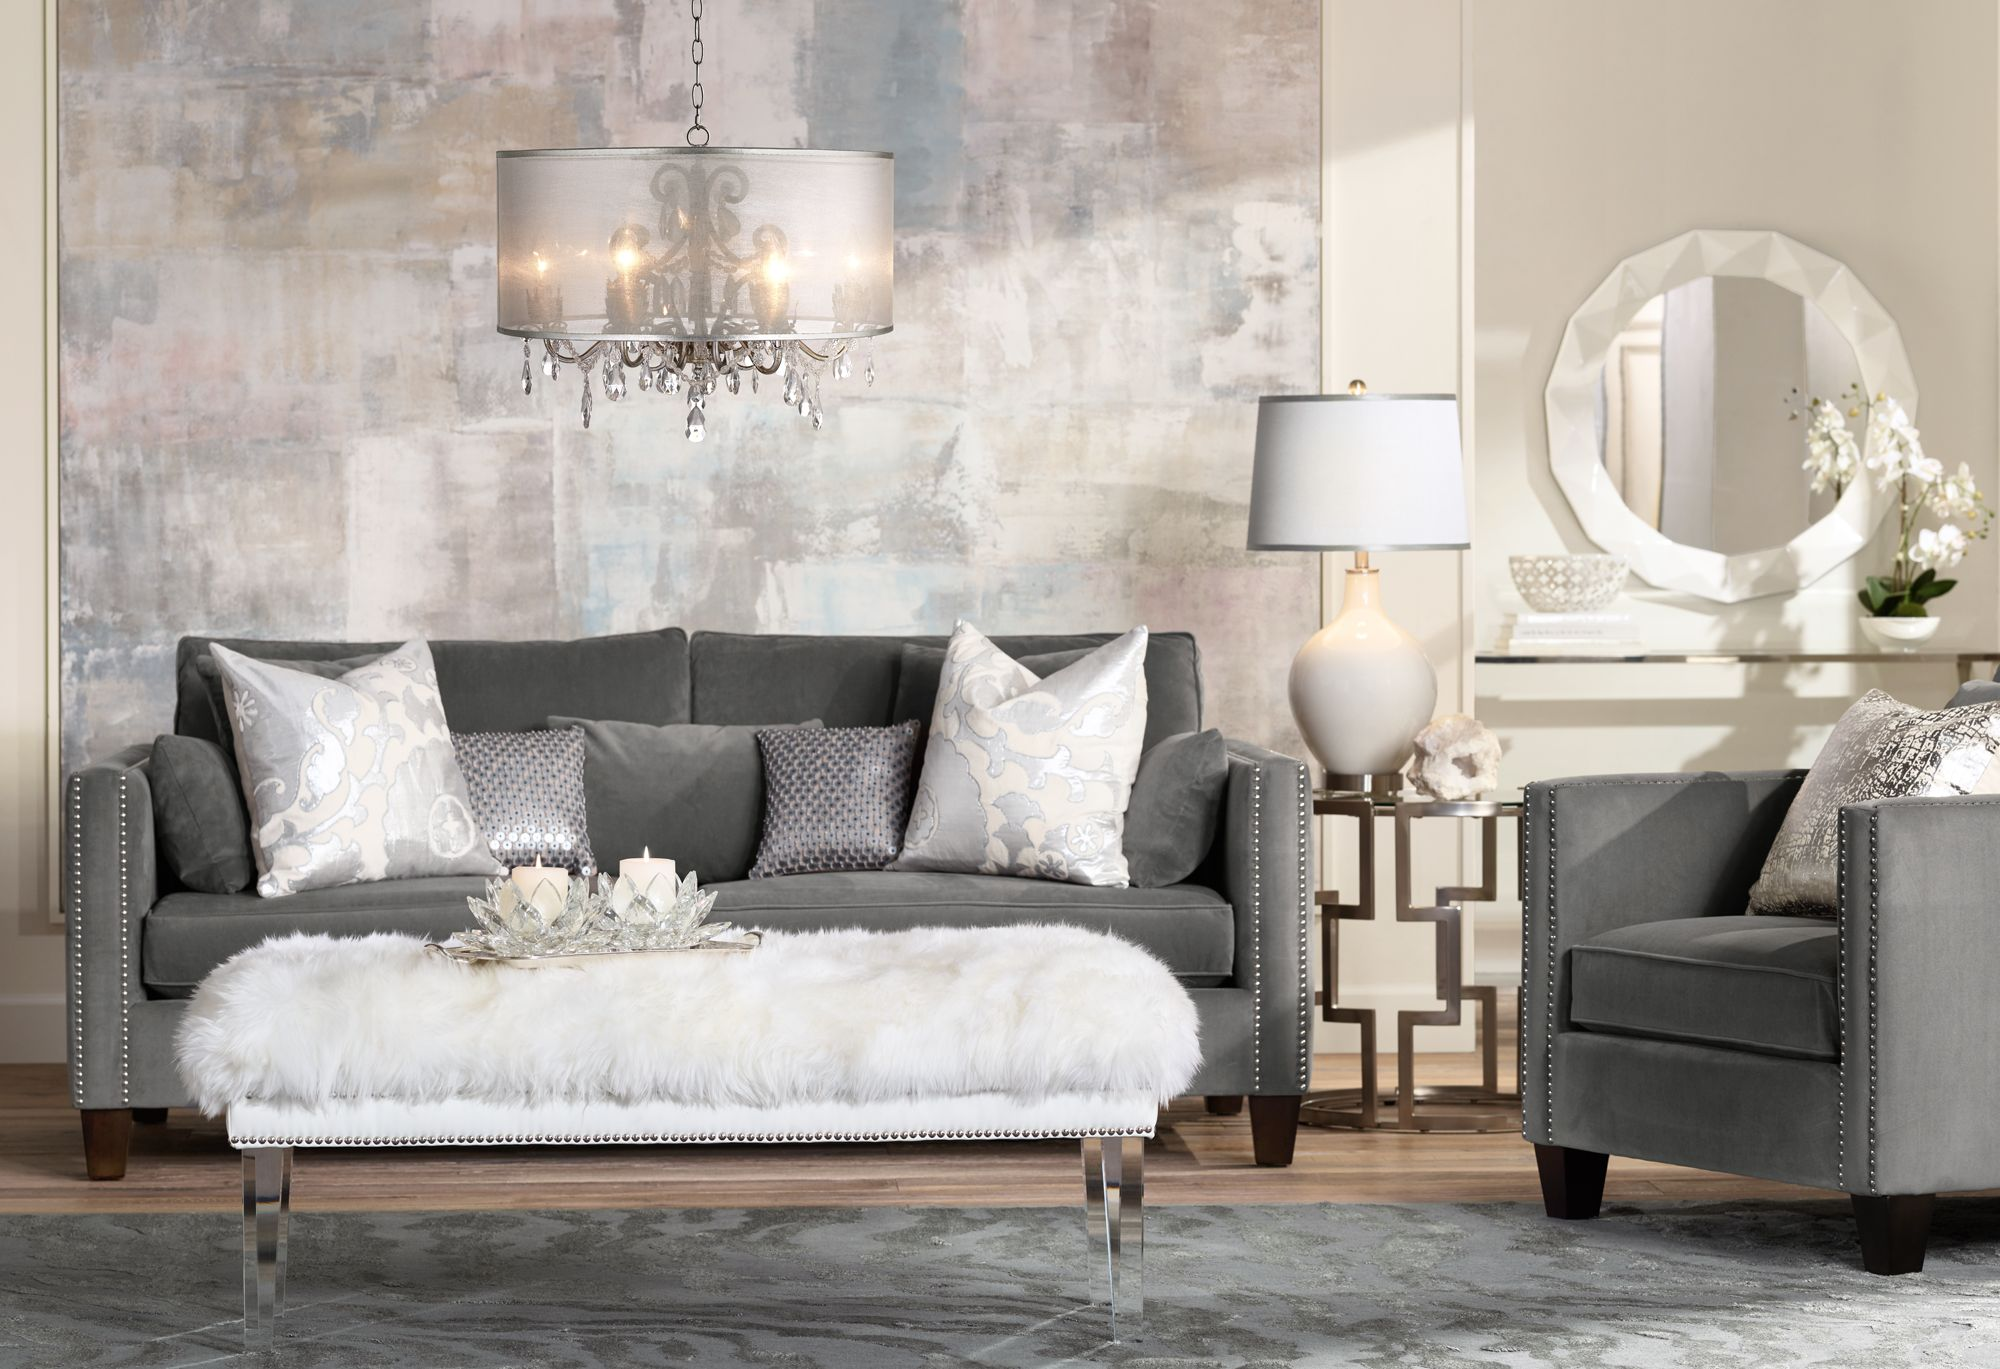 A trendsetting living room with acrylic furniture and